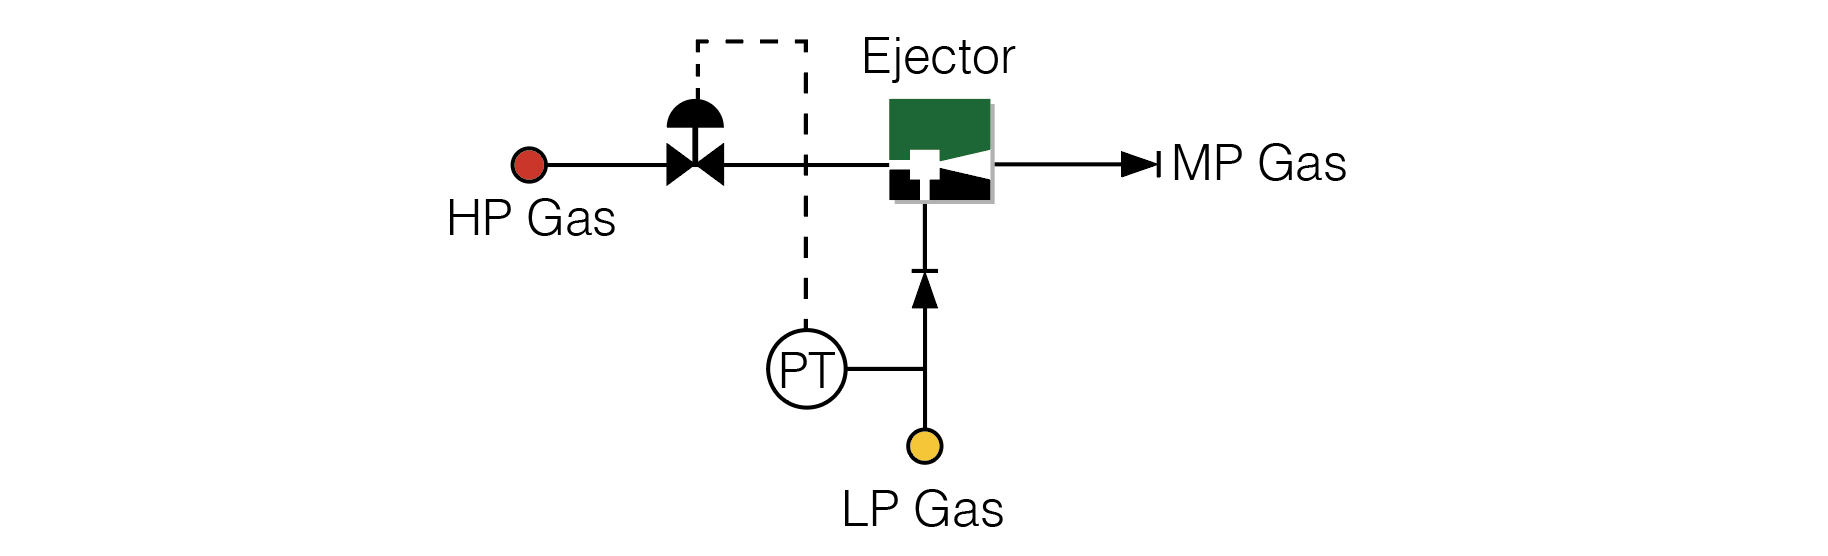 Gas Ejector Control using Motive throttling